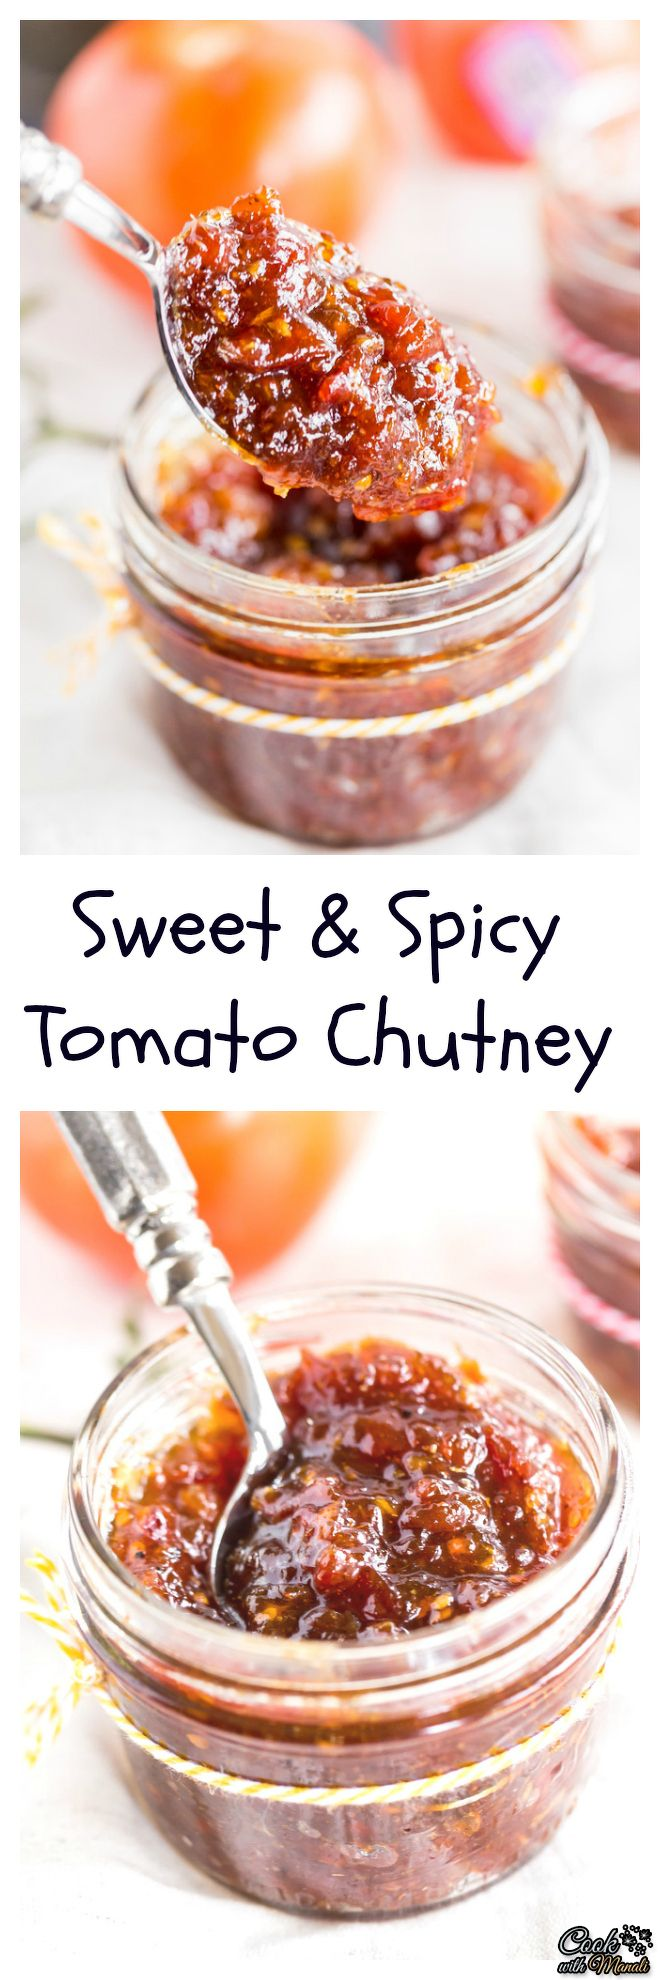 Sweet & Spicy Tomato Chutney is awesome with parathas or sandwiches! It's the perfect accompaniment to any Indian meal. #indian #chutney #vegan #tomato